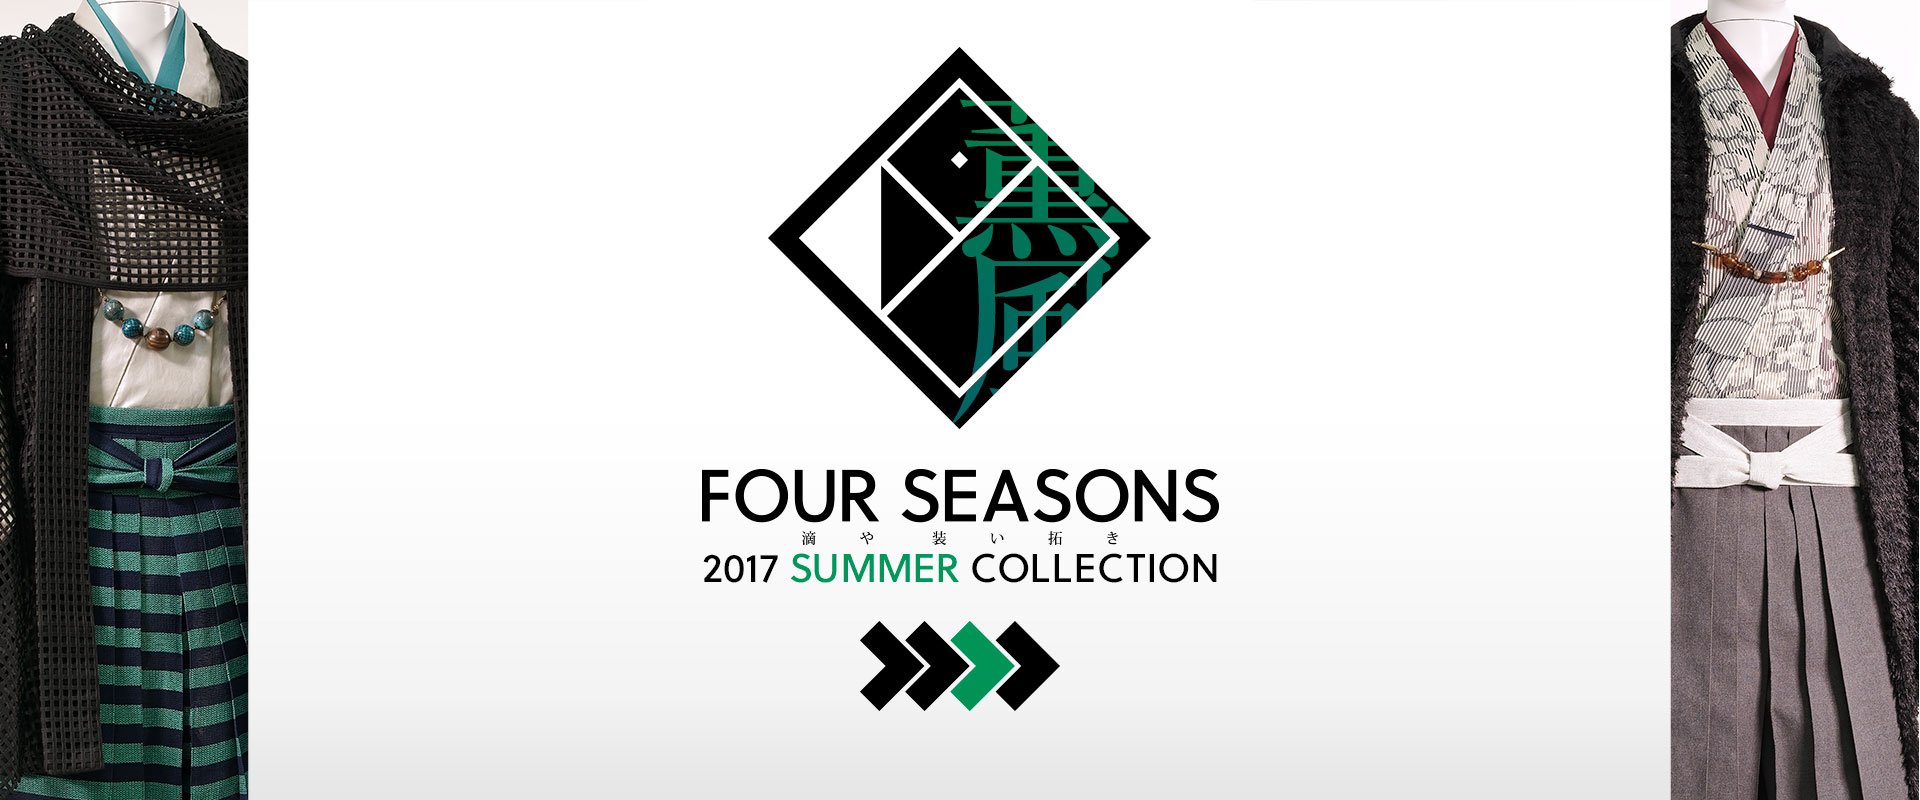 FOUR SEASONS 2017 SUMMER COLLECTION